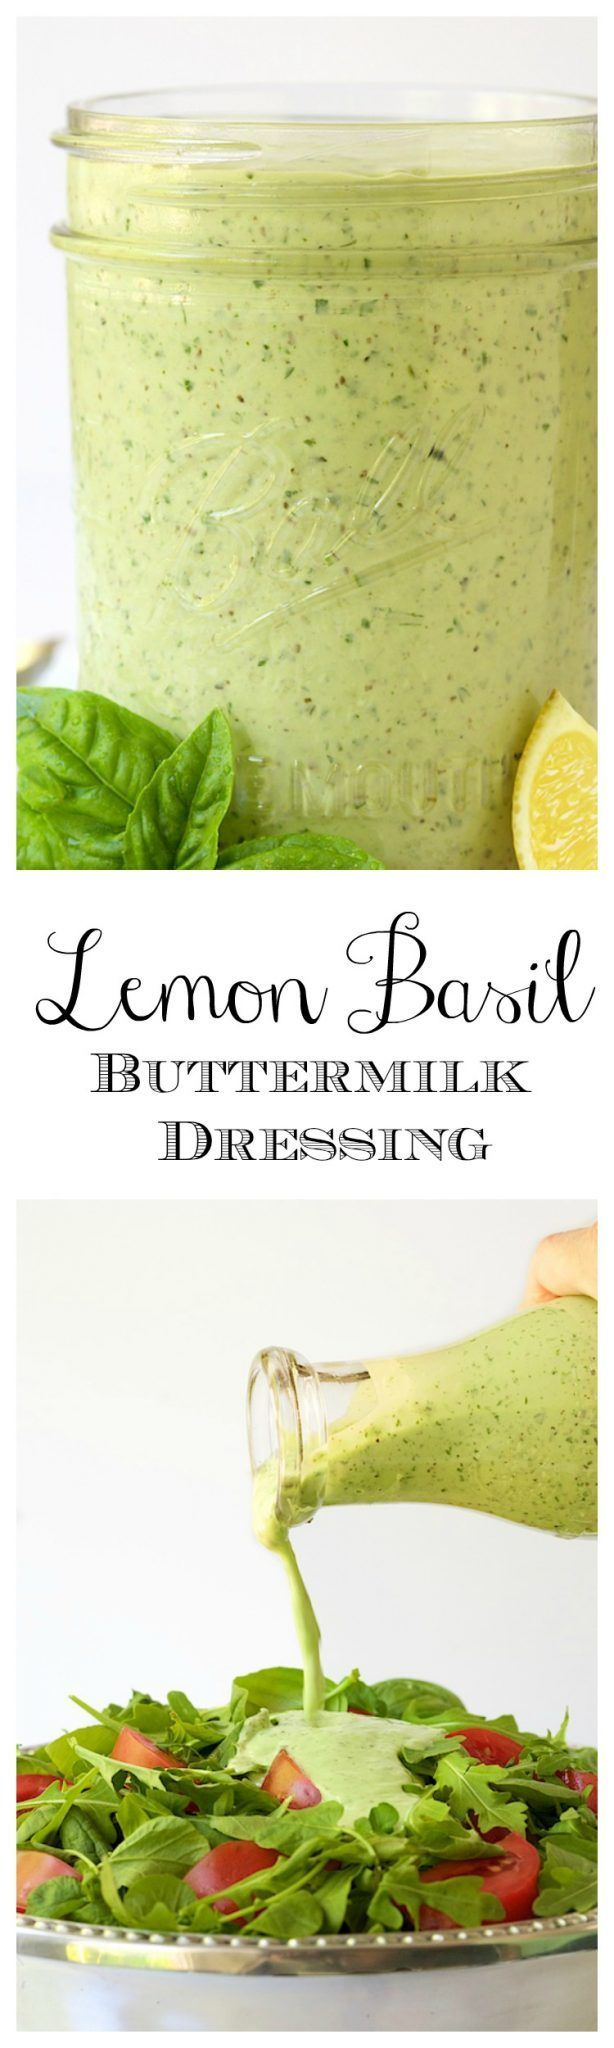 Lemon Basil Buttermilk Dressing Recipe Buttermilk Dressing Recipes Homemade Salads